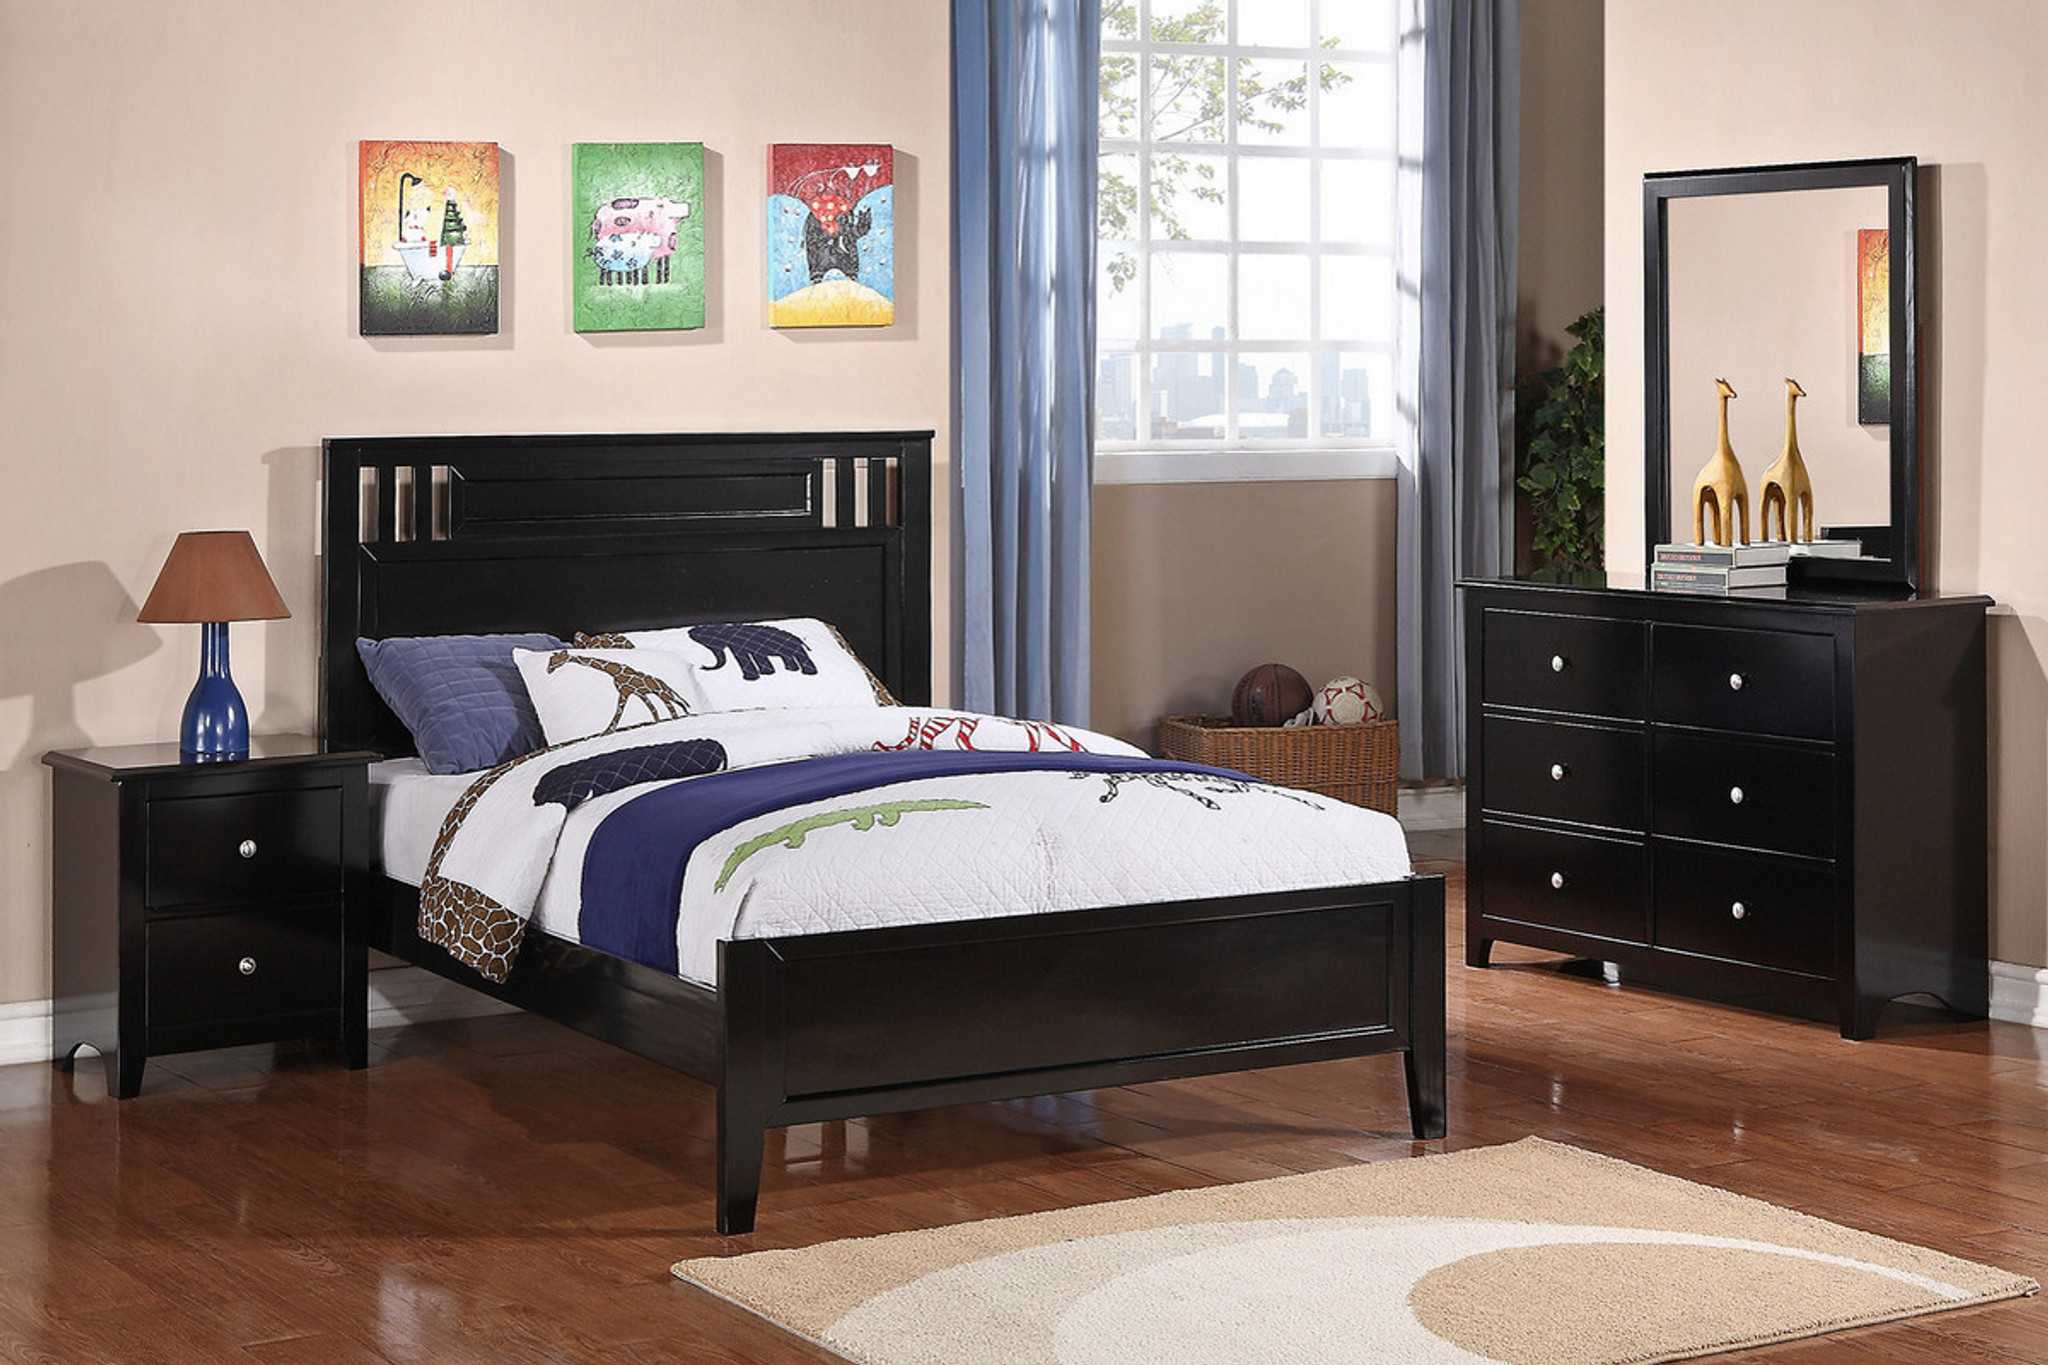 F9046 Black Twin Full Bed Frame By Poundex